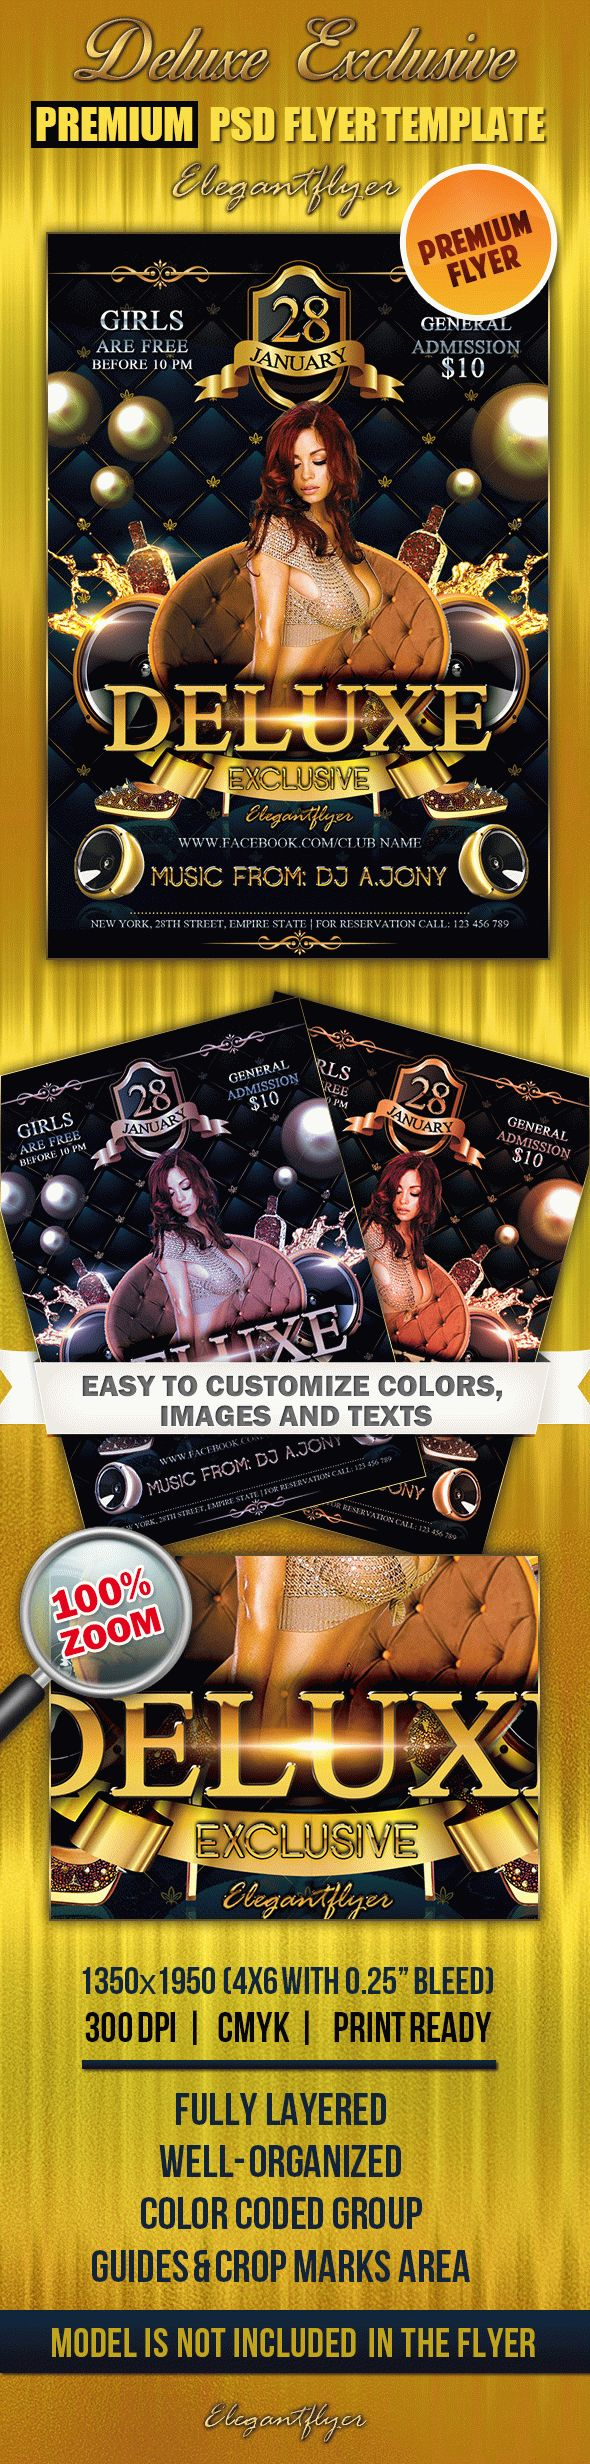 Deluxe Exclusive – Premium Club flyer PSD Template